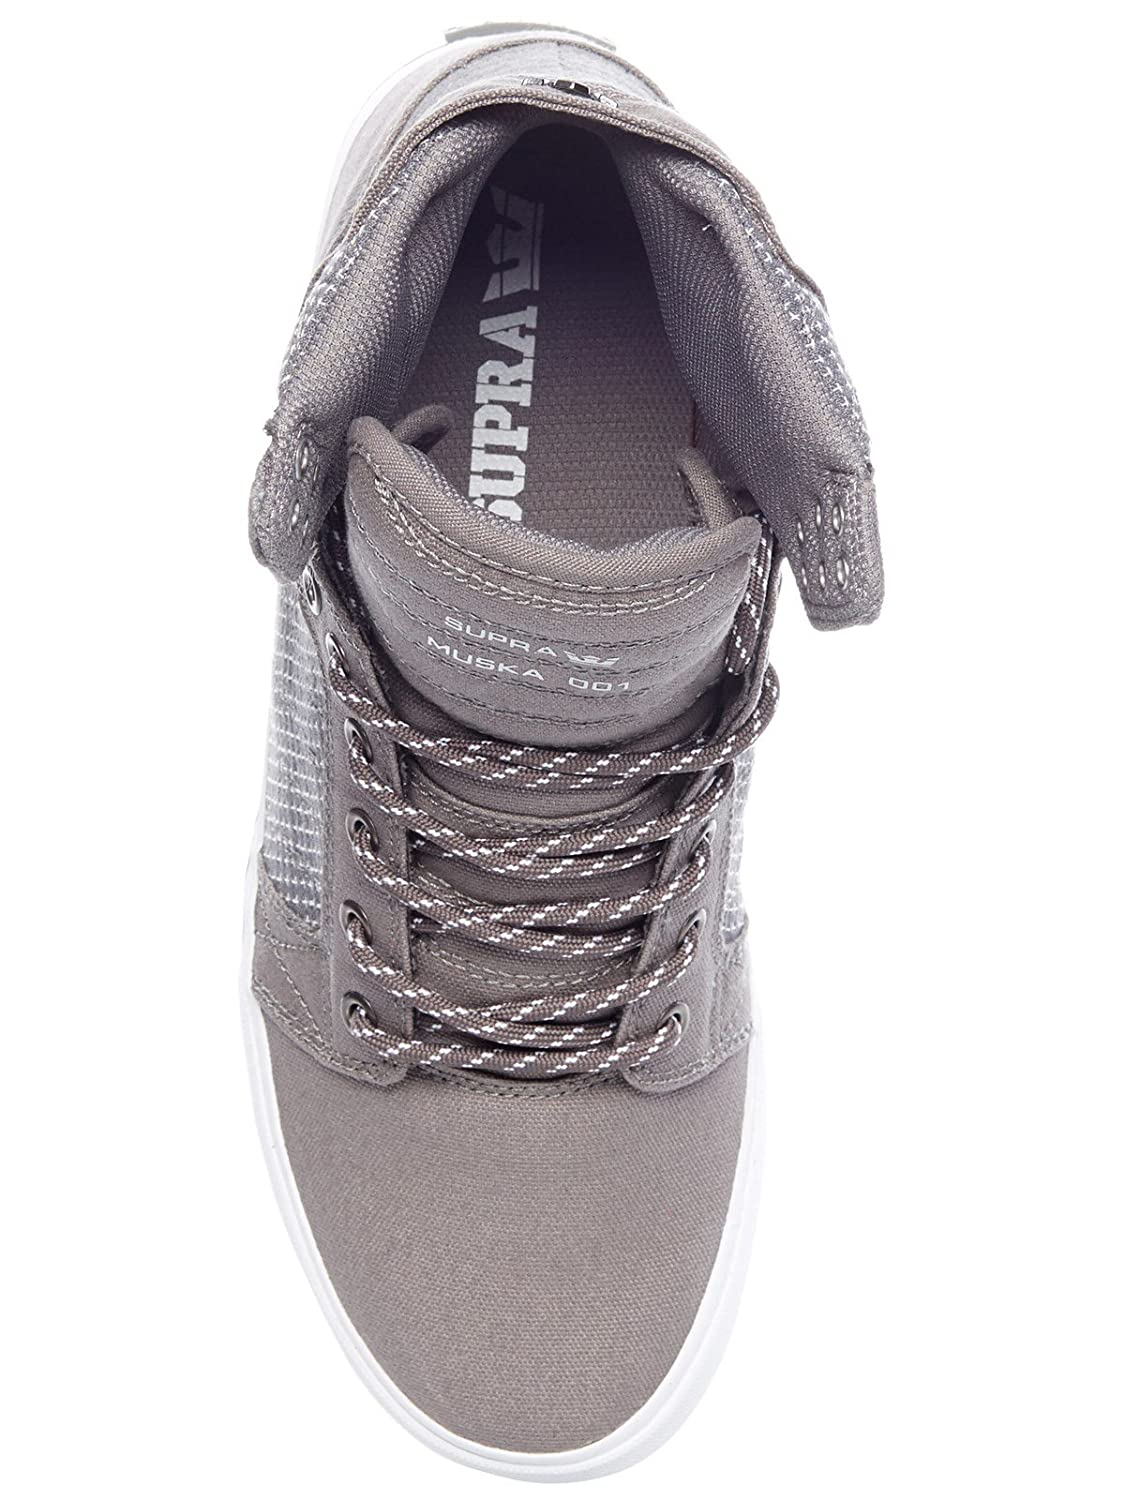 Supra Men's US|Charcoal-white Skytop B074KK5WW2 11.5 M US|Charcoal-white Men's 6f62f4